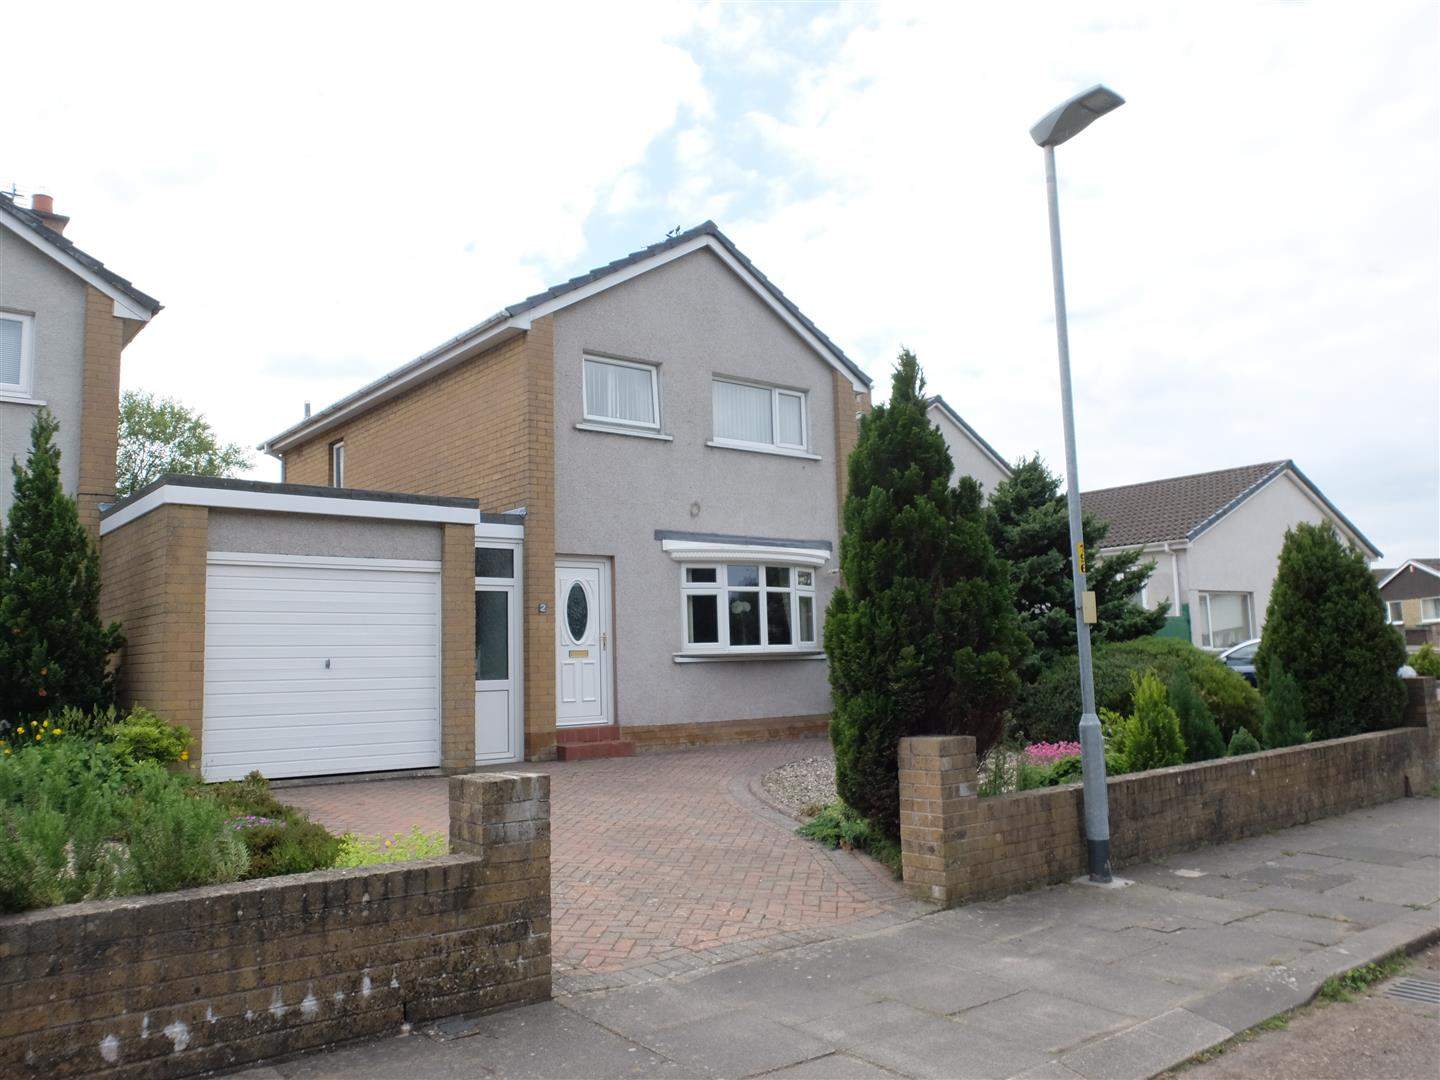 2 Dee Close Carlisle 3 Bedrooms House - Detached For Sale